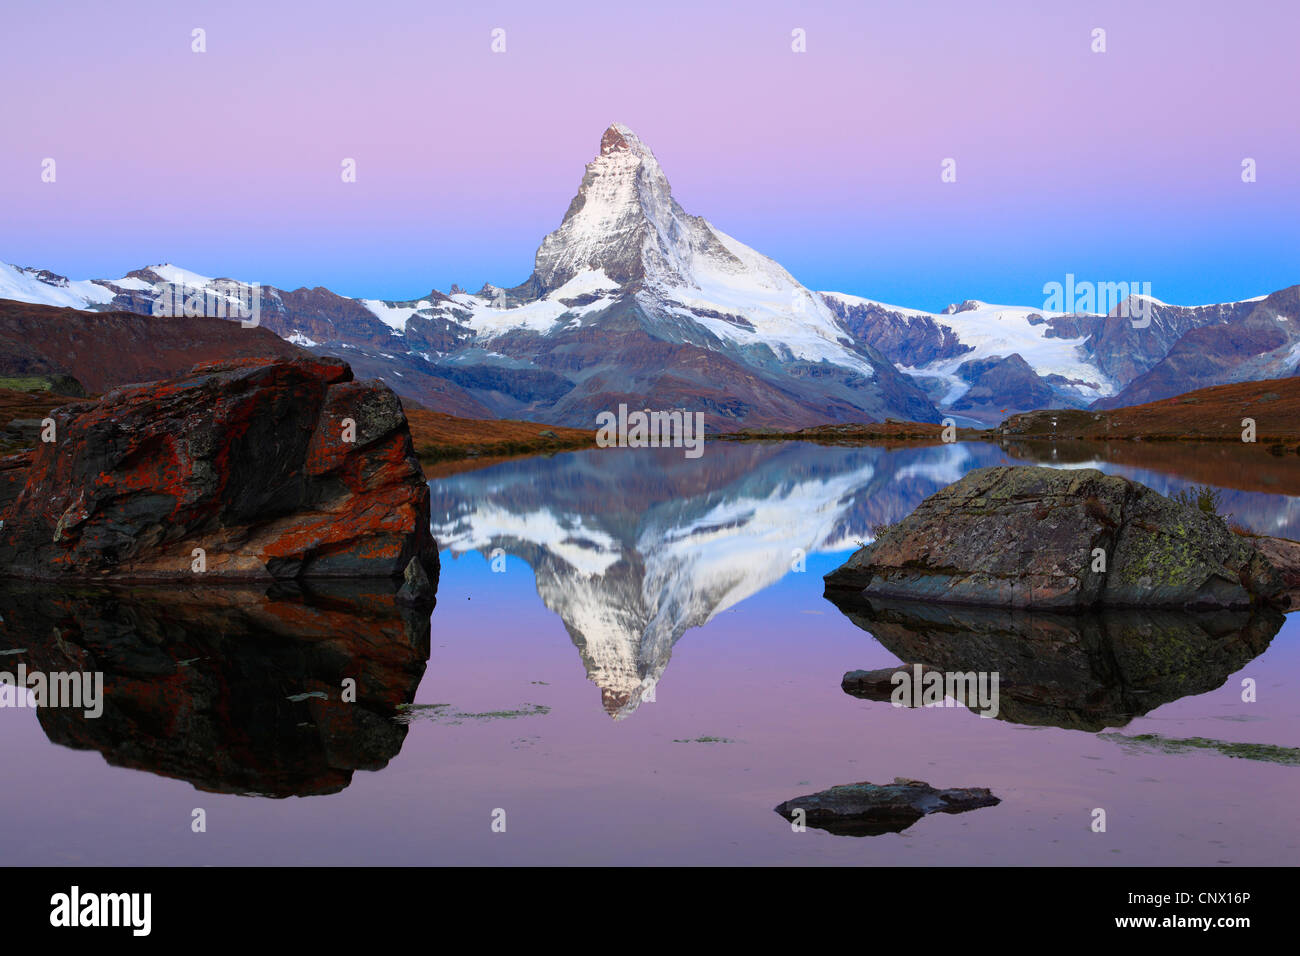 view at the Matterhorn from a mountain lake, Switzerland, Valais Stock Photo